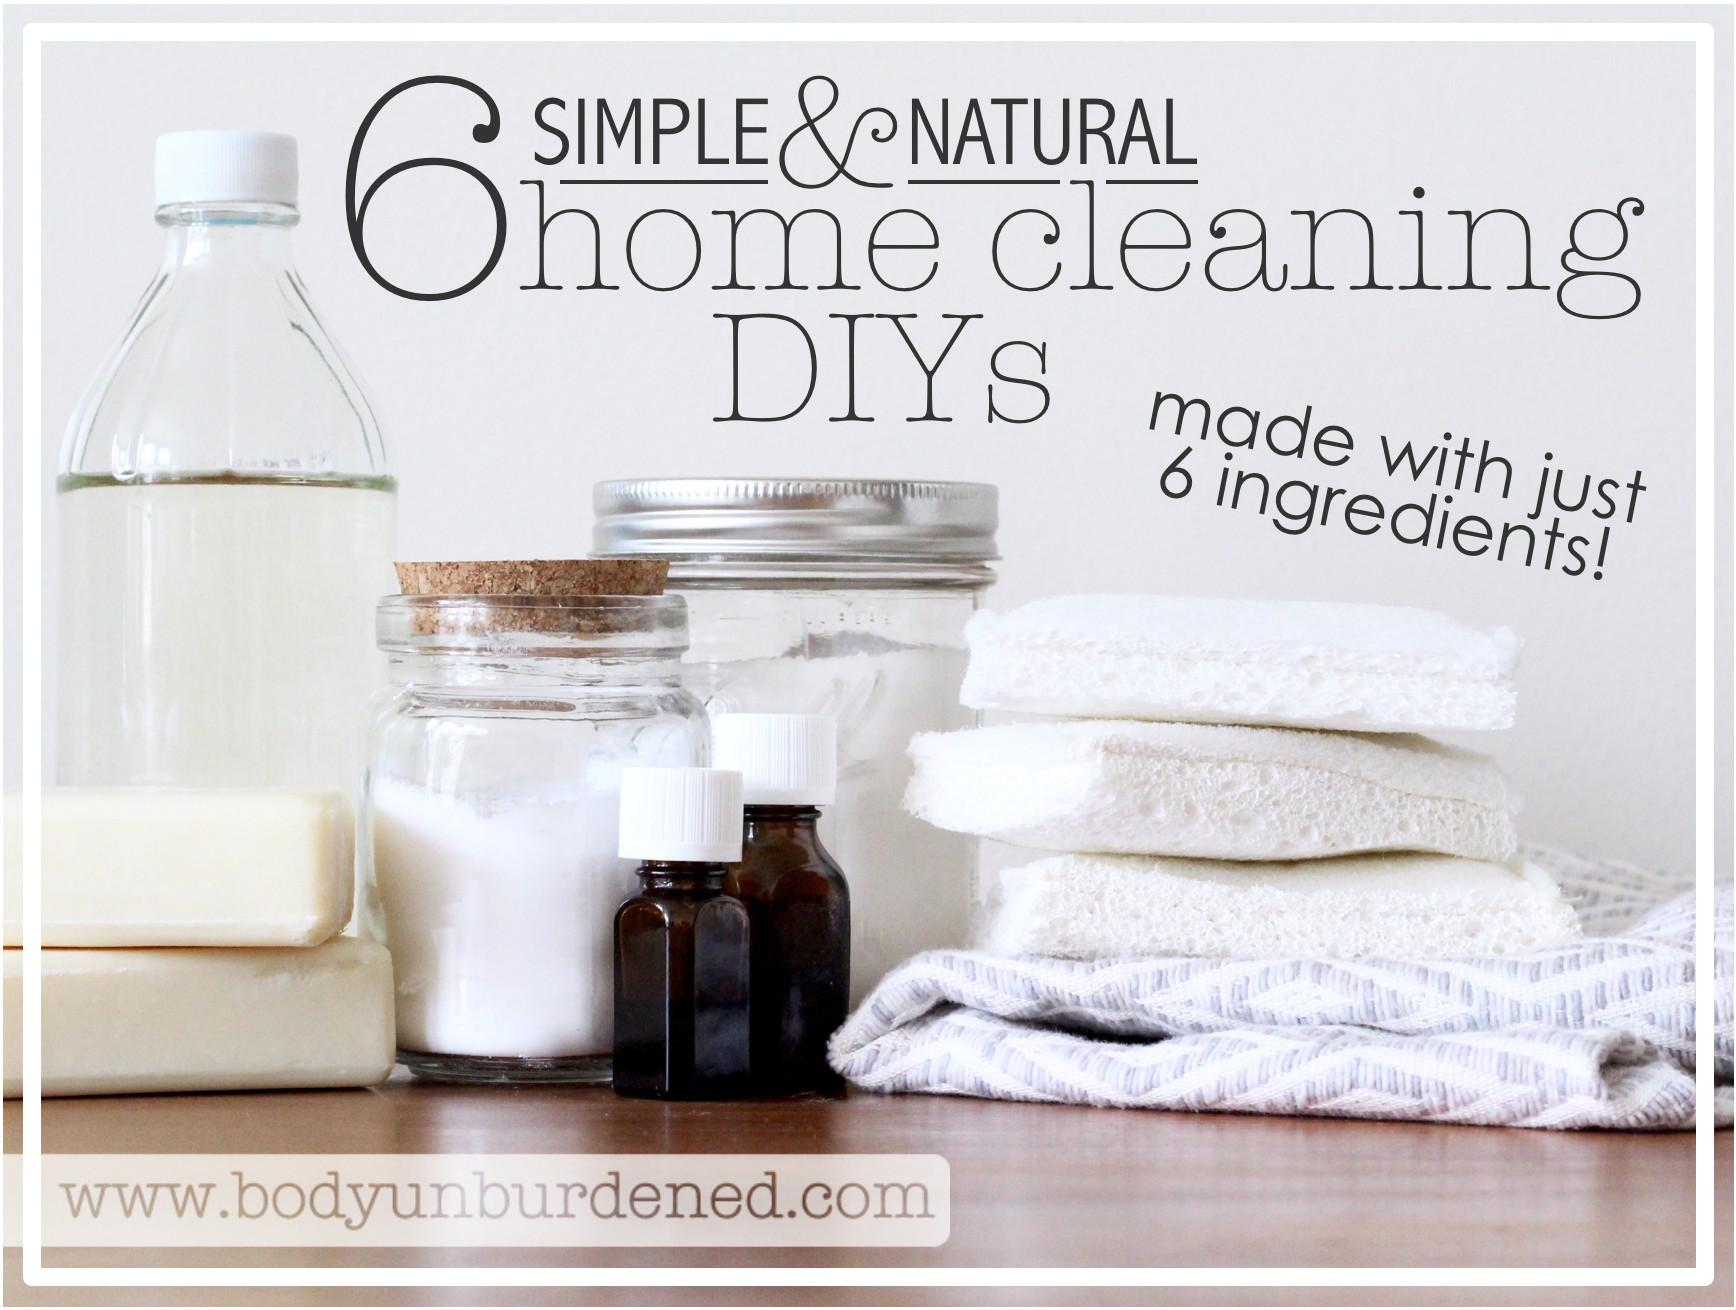 Simple Natural Home Cleaning Diys Made Just